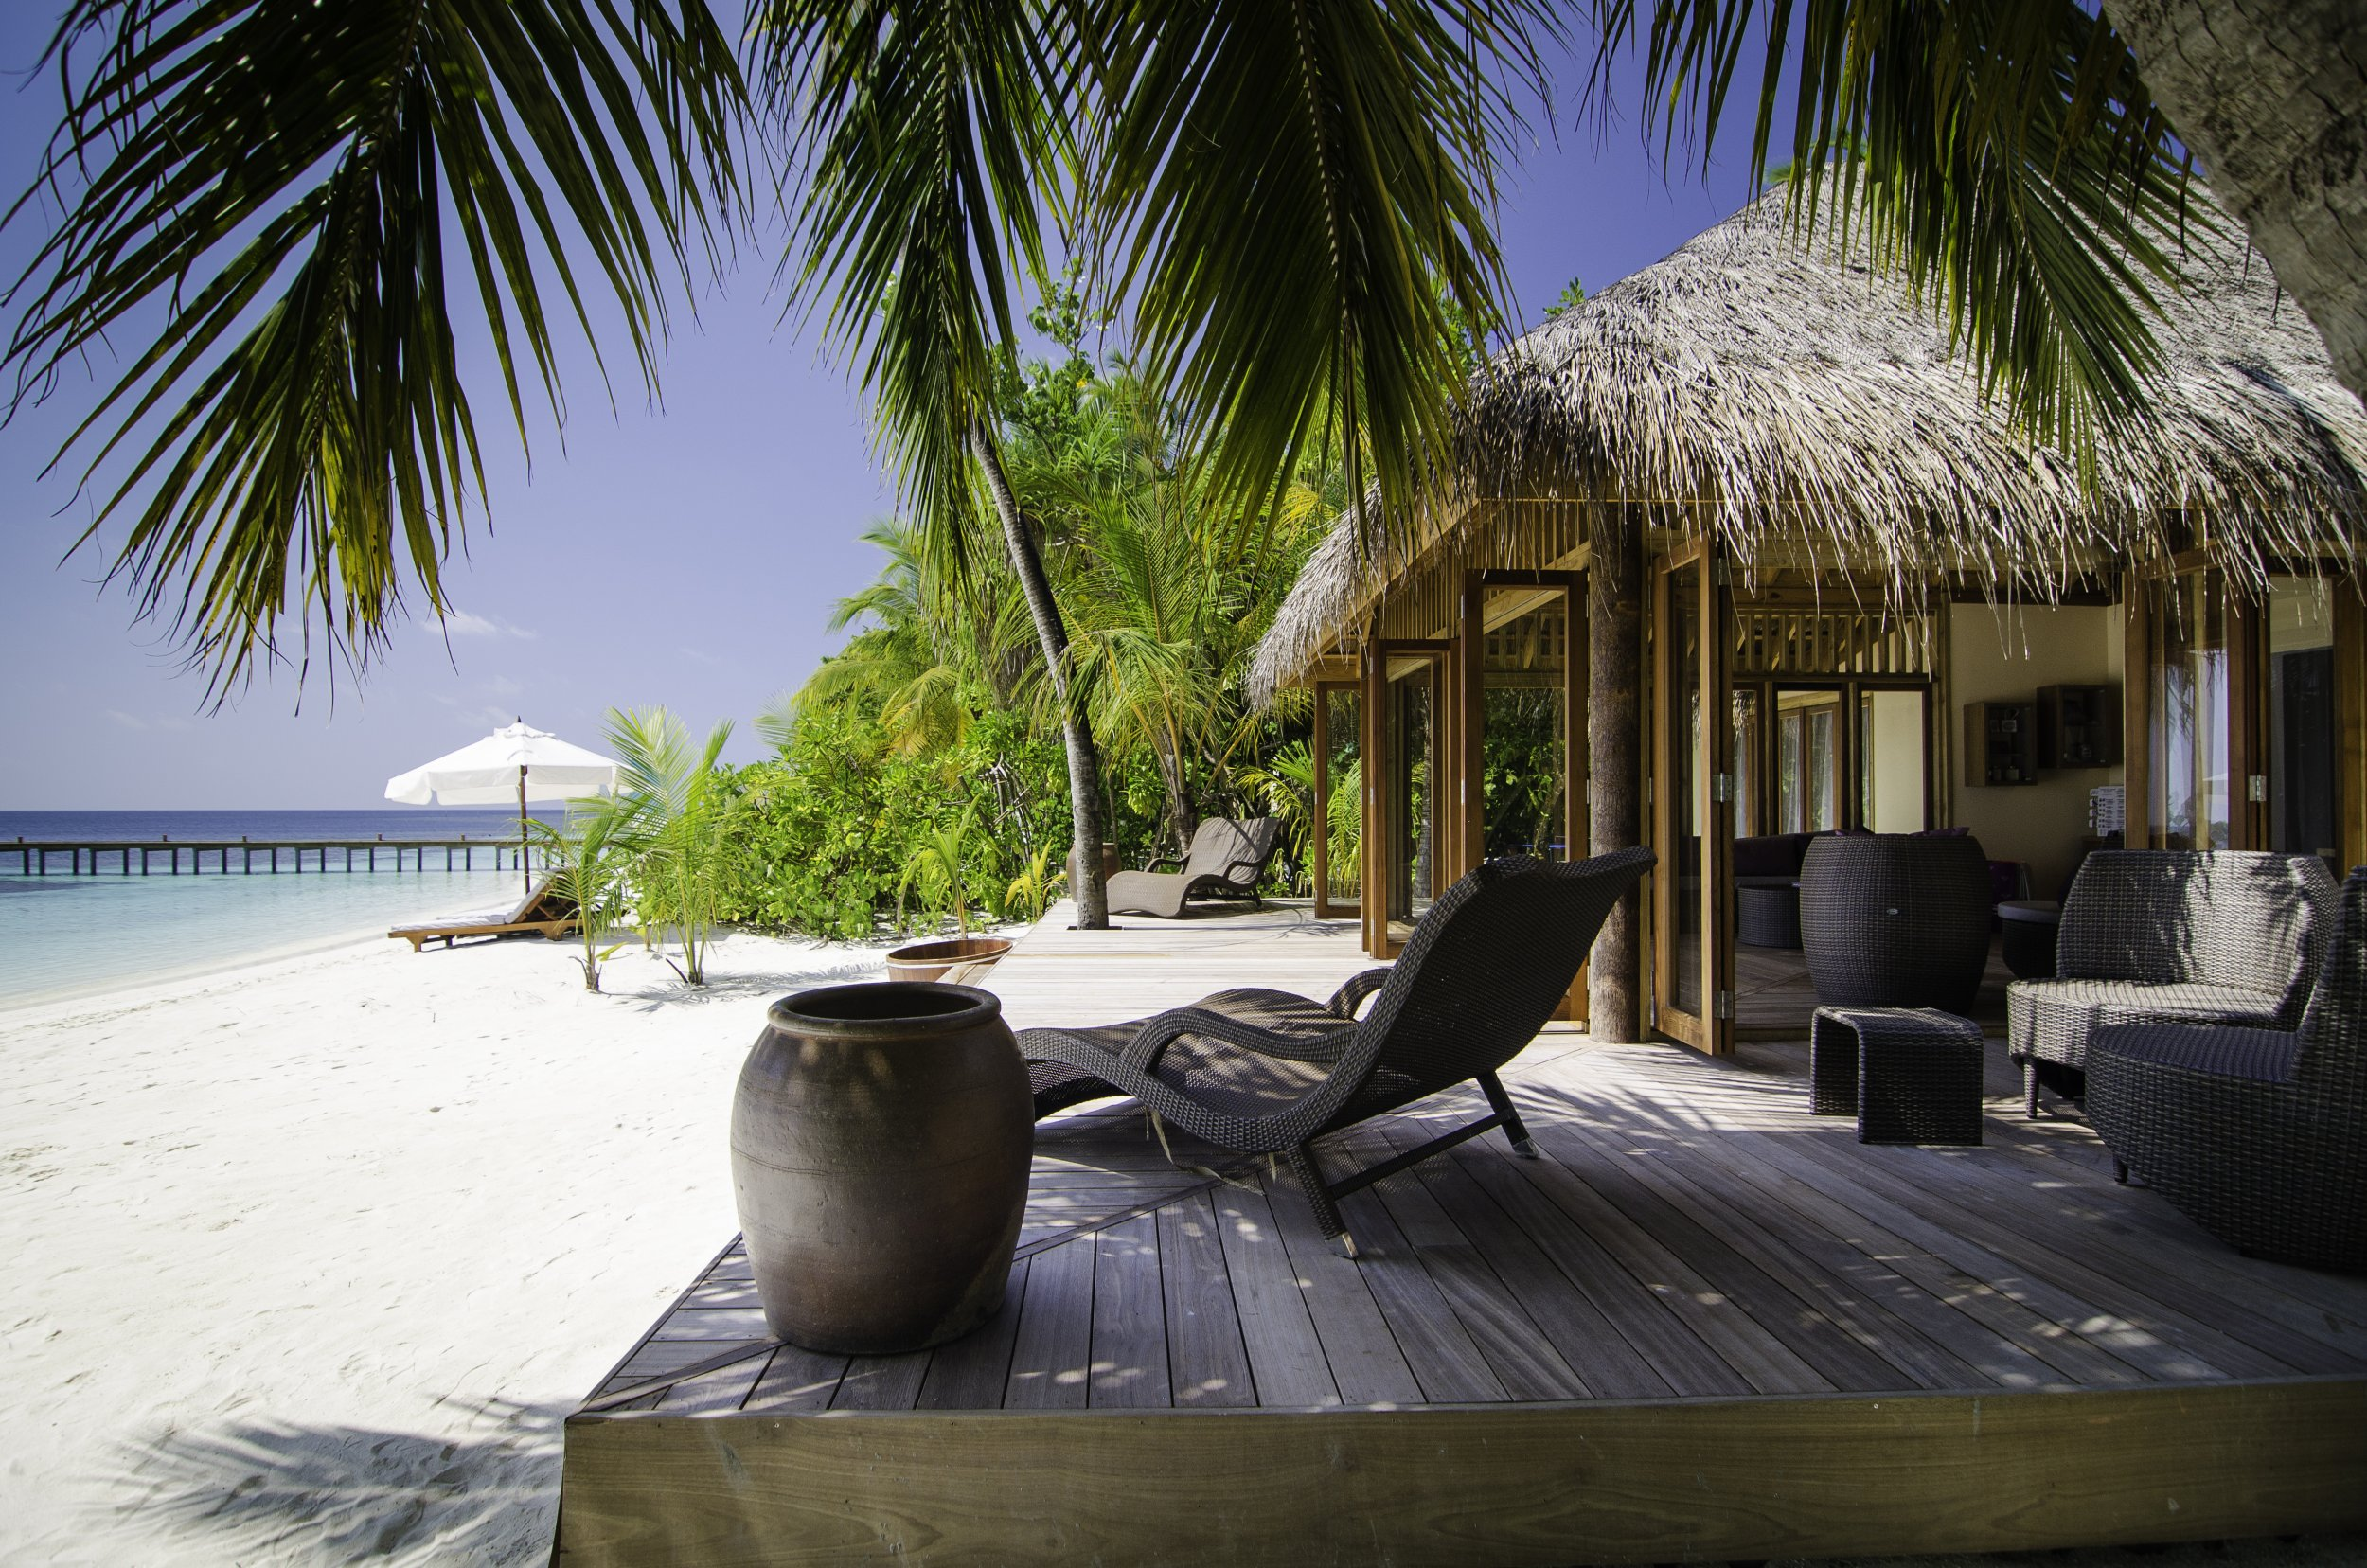 01_27_Maldives_02